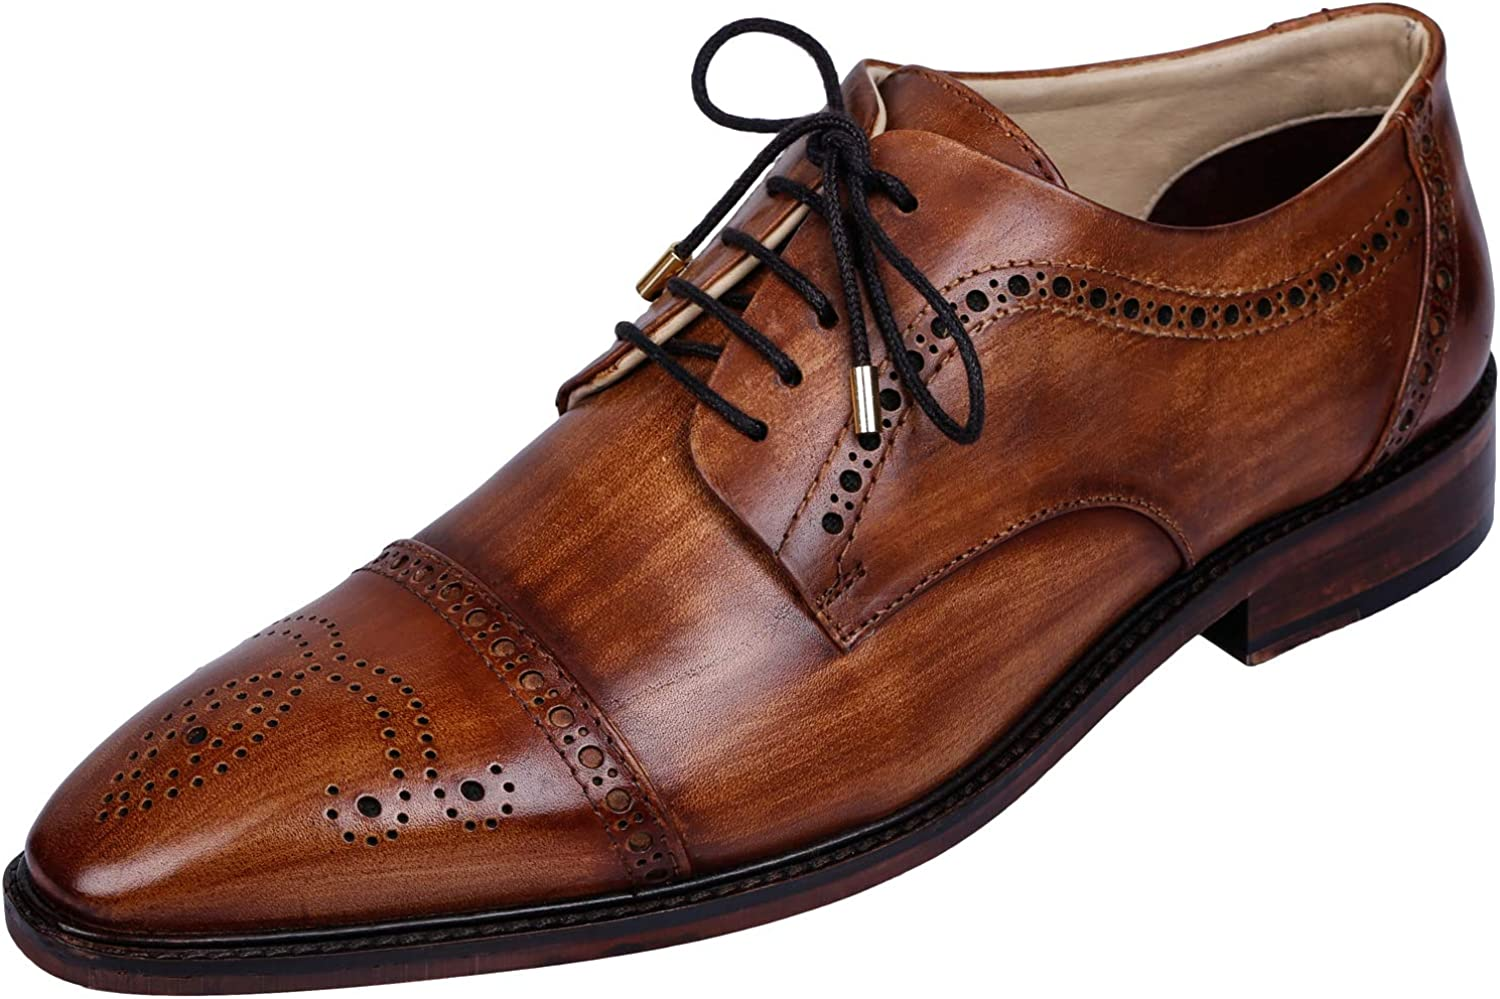 Lethato Handcrafted Mens Brogue Captoe Oxford Derby Genuine Leather Lace up shoes with golden color Metal Aglets shoeslace Tips